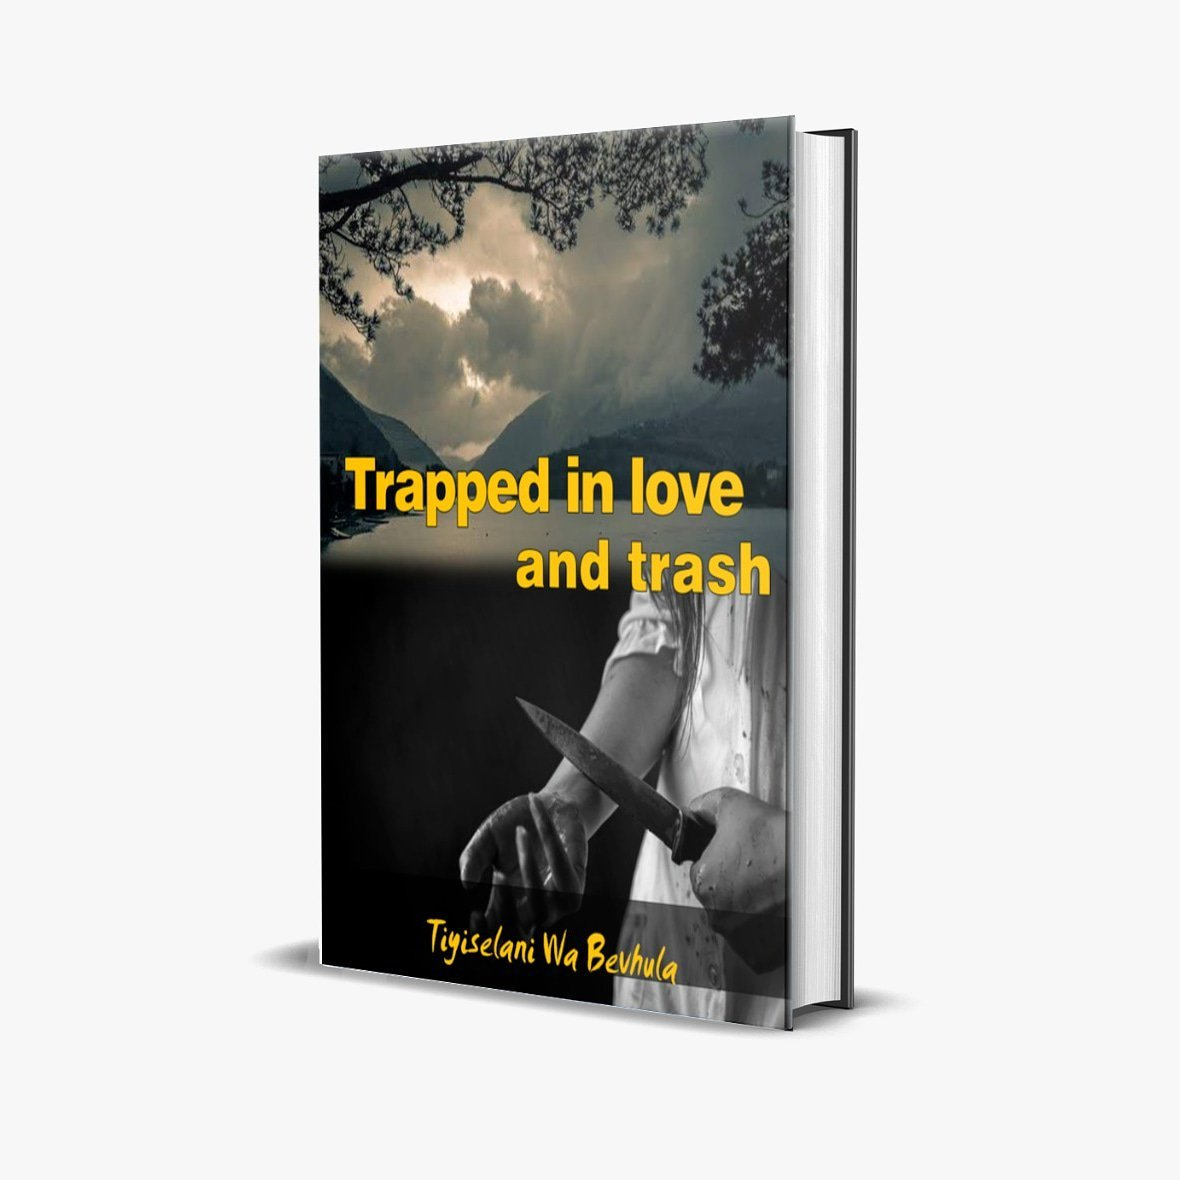 @KFCSA Hey @KFCSA can I please give them a copy of my upcoming book titled #TrappedInLoveAndTrash. It has so many lessons about love that they can use to strengthen their relationship. #KFCWEDDING #KFCProposal #StreetwiseWedding